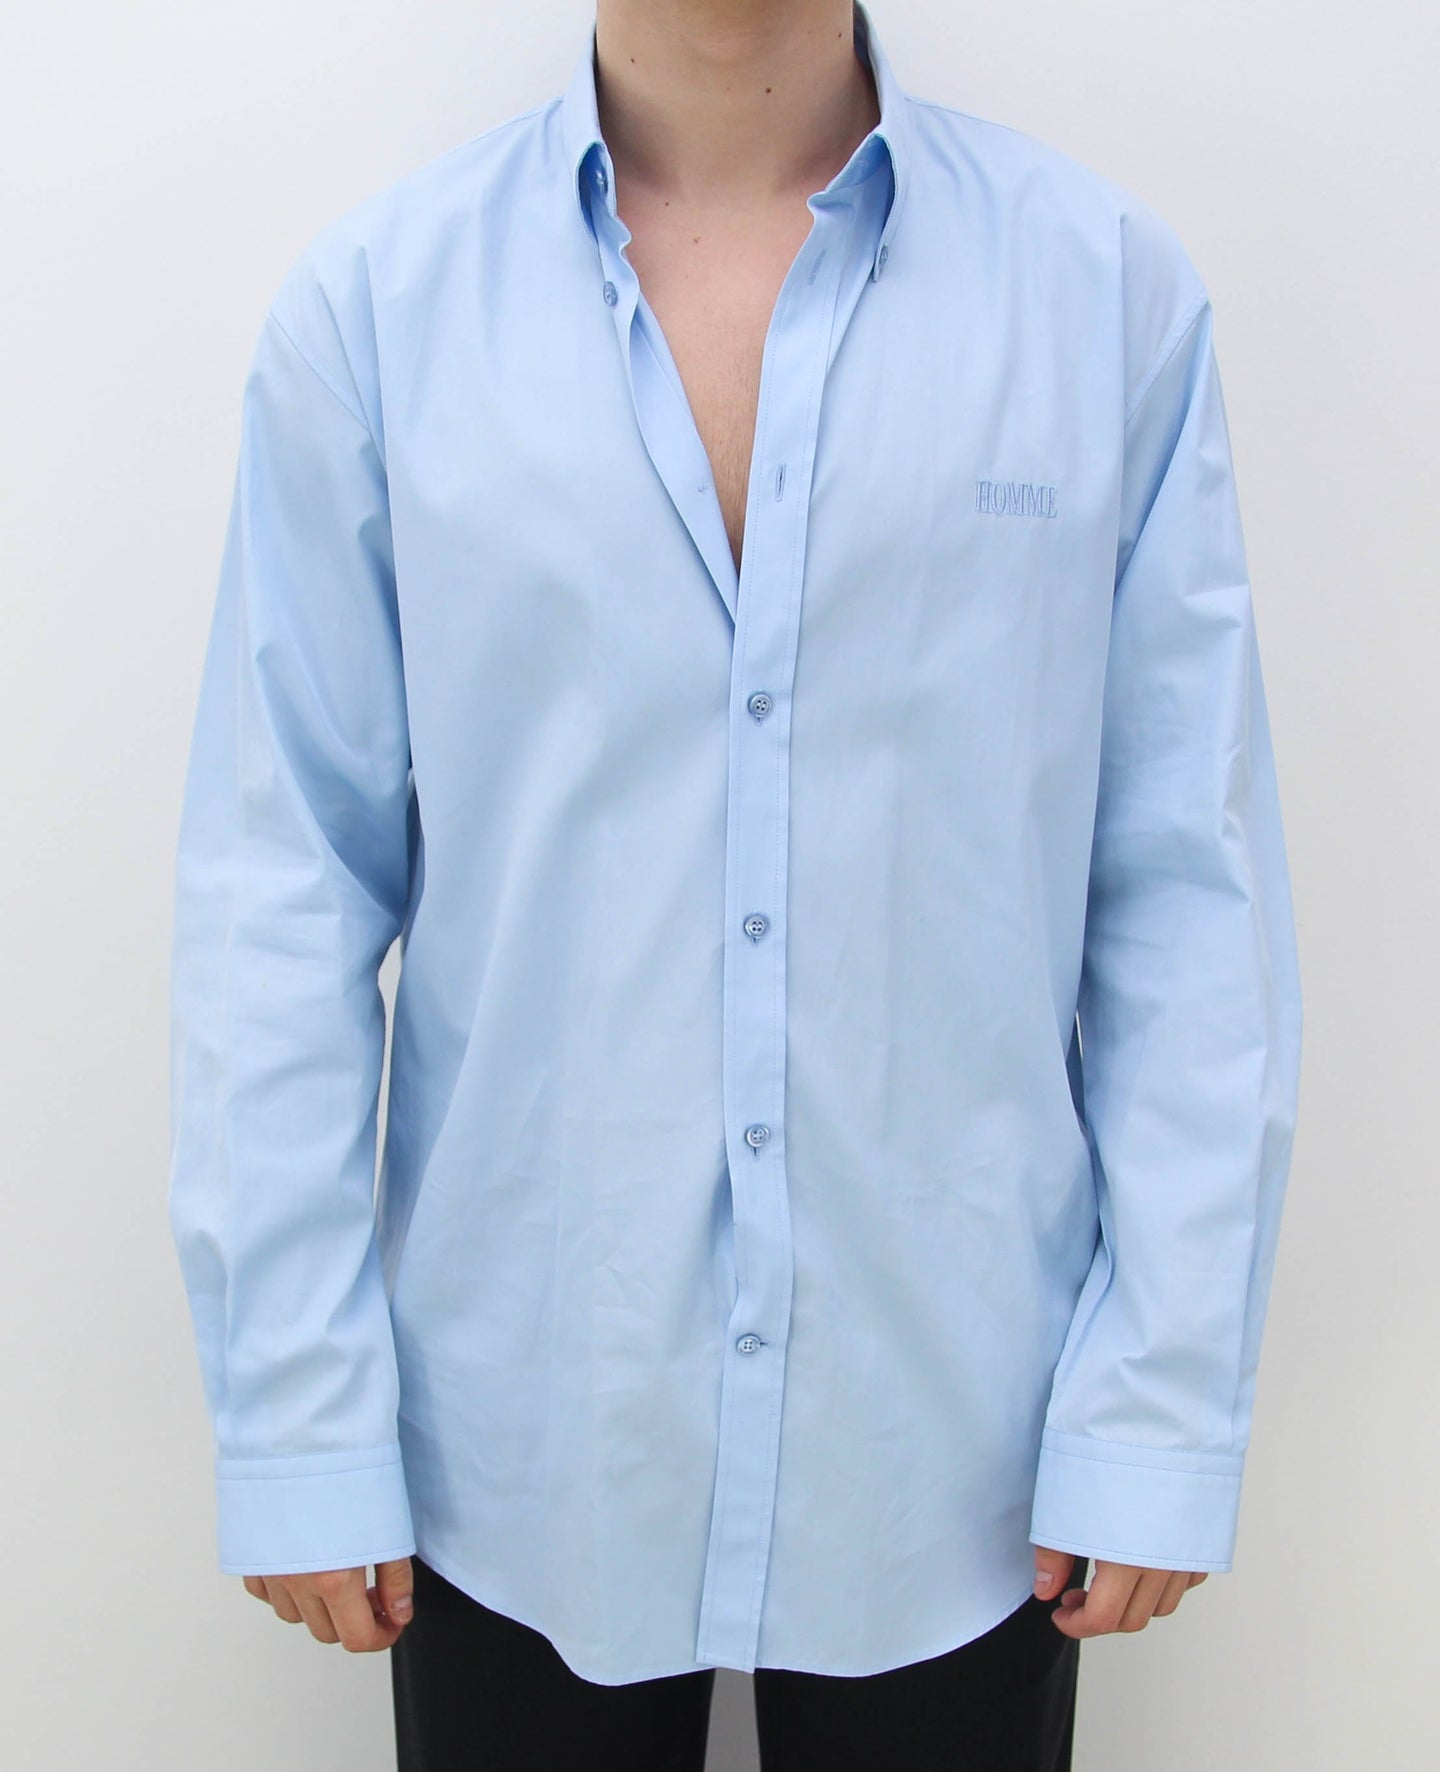 Homme Embroidered Shirt